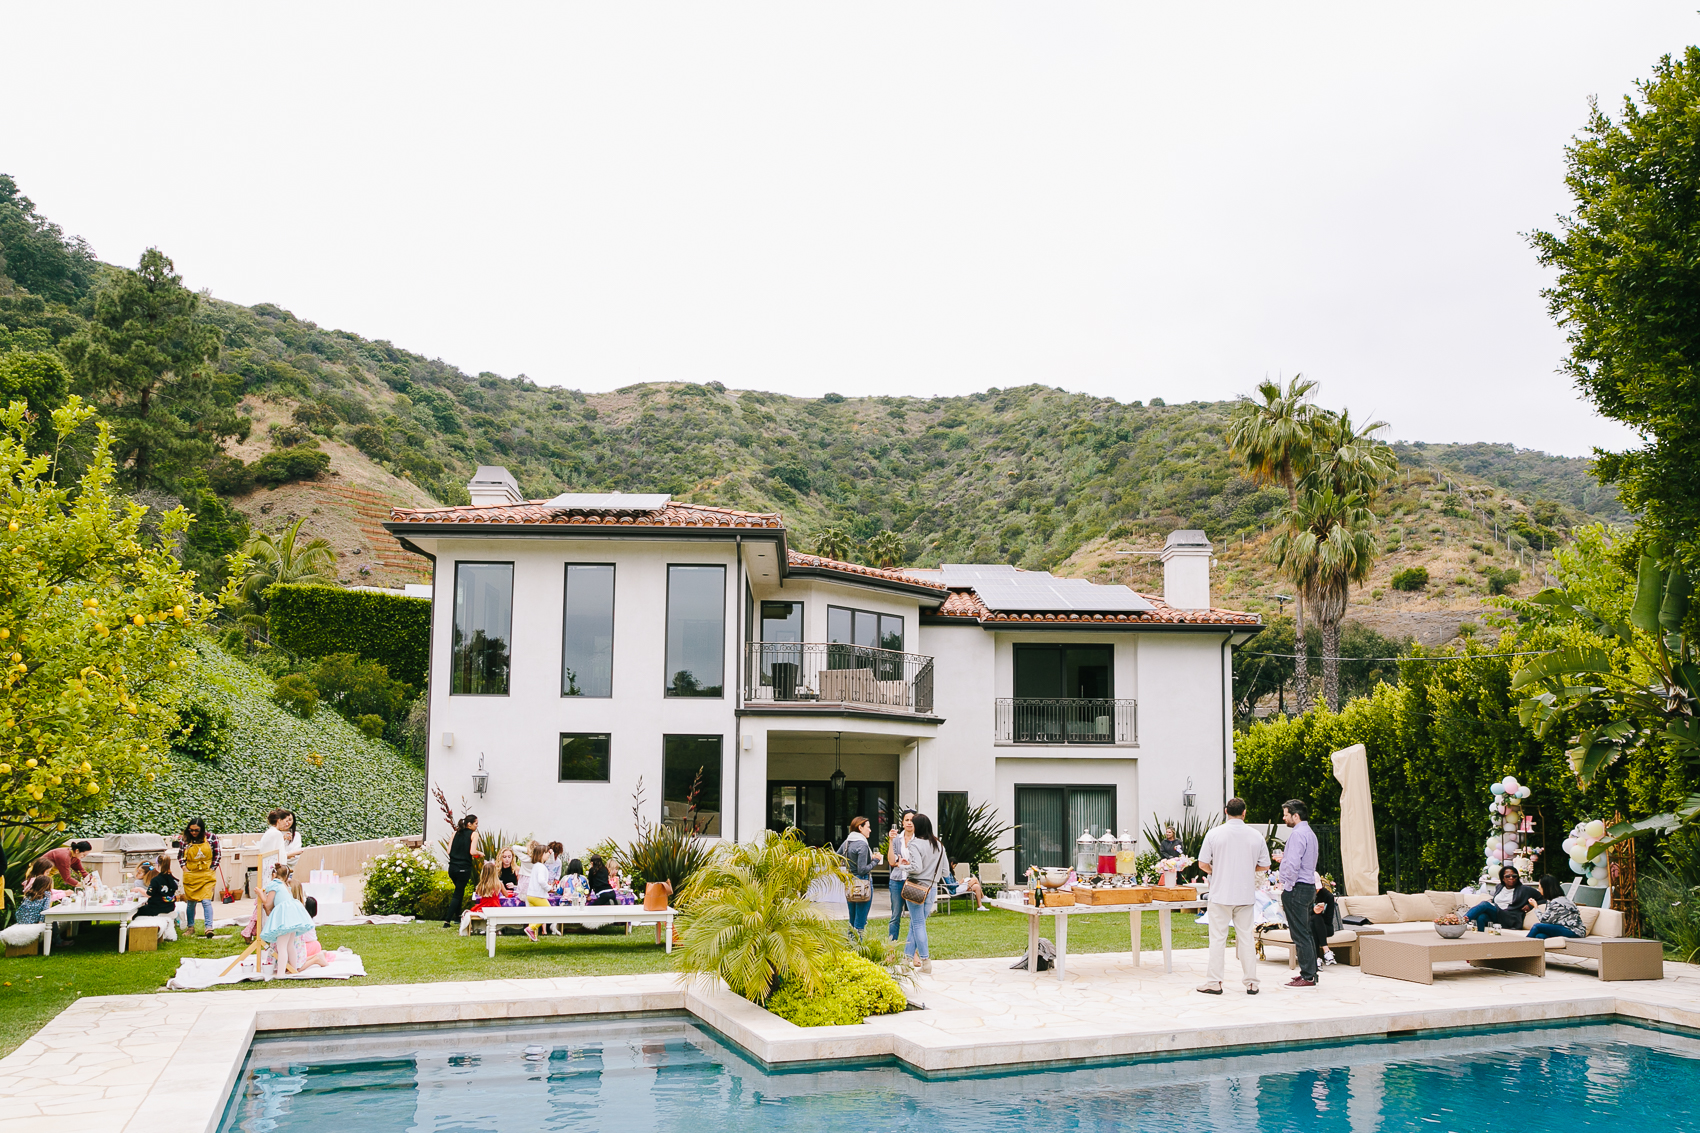 Los_Angeles_Family_Photographer_Luxury_Childrens_Party_Beverly_Hills_Unicorn_Birthday_Party-0938.jpg